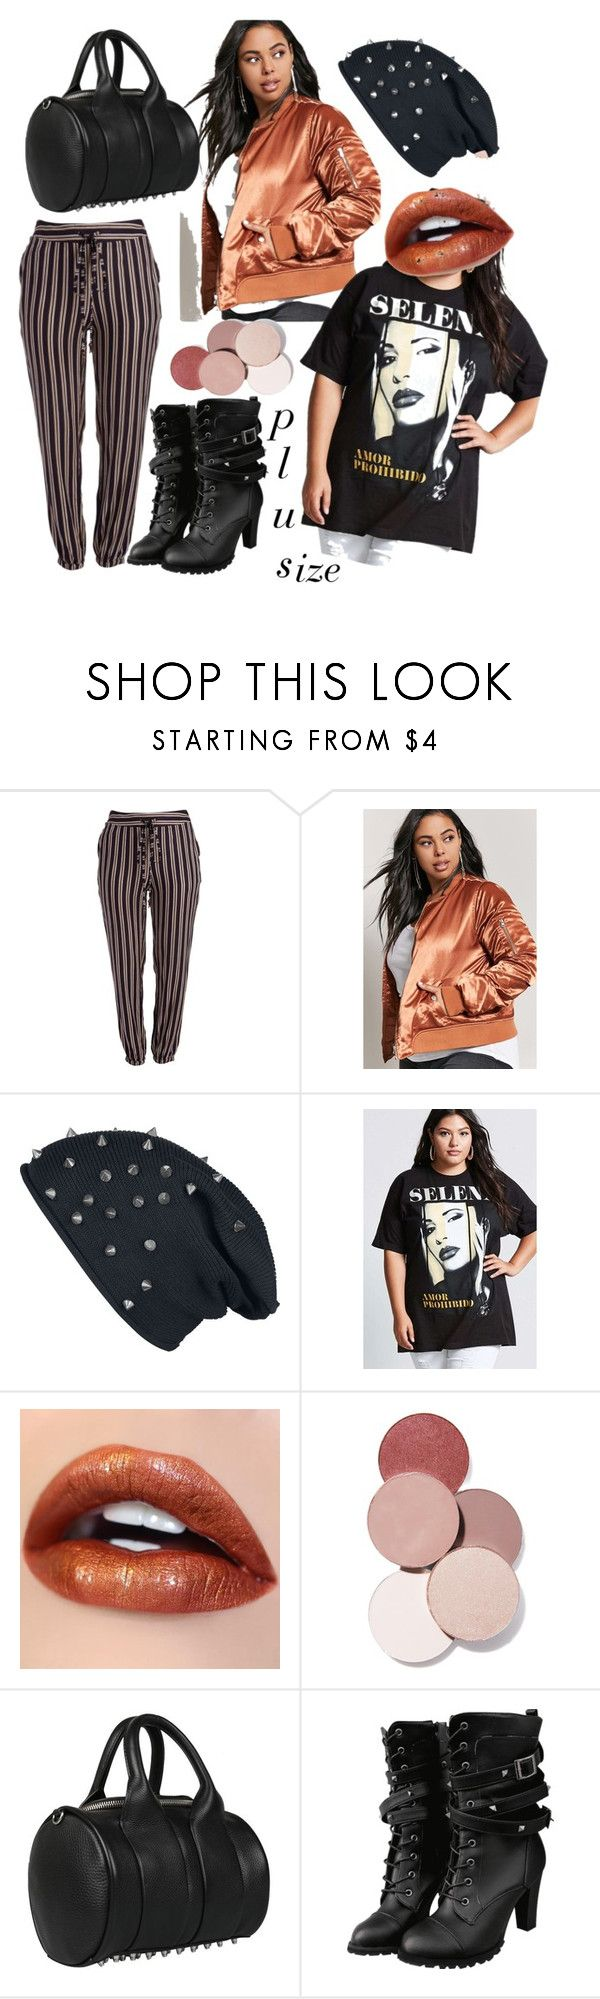 """""""Gasolina"""" by plus-size-royalty on Polyvore featuring Forever 21, LunatiCK Cosmetic Labs, Alexander Wang and plus size clothing"""